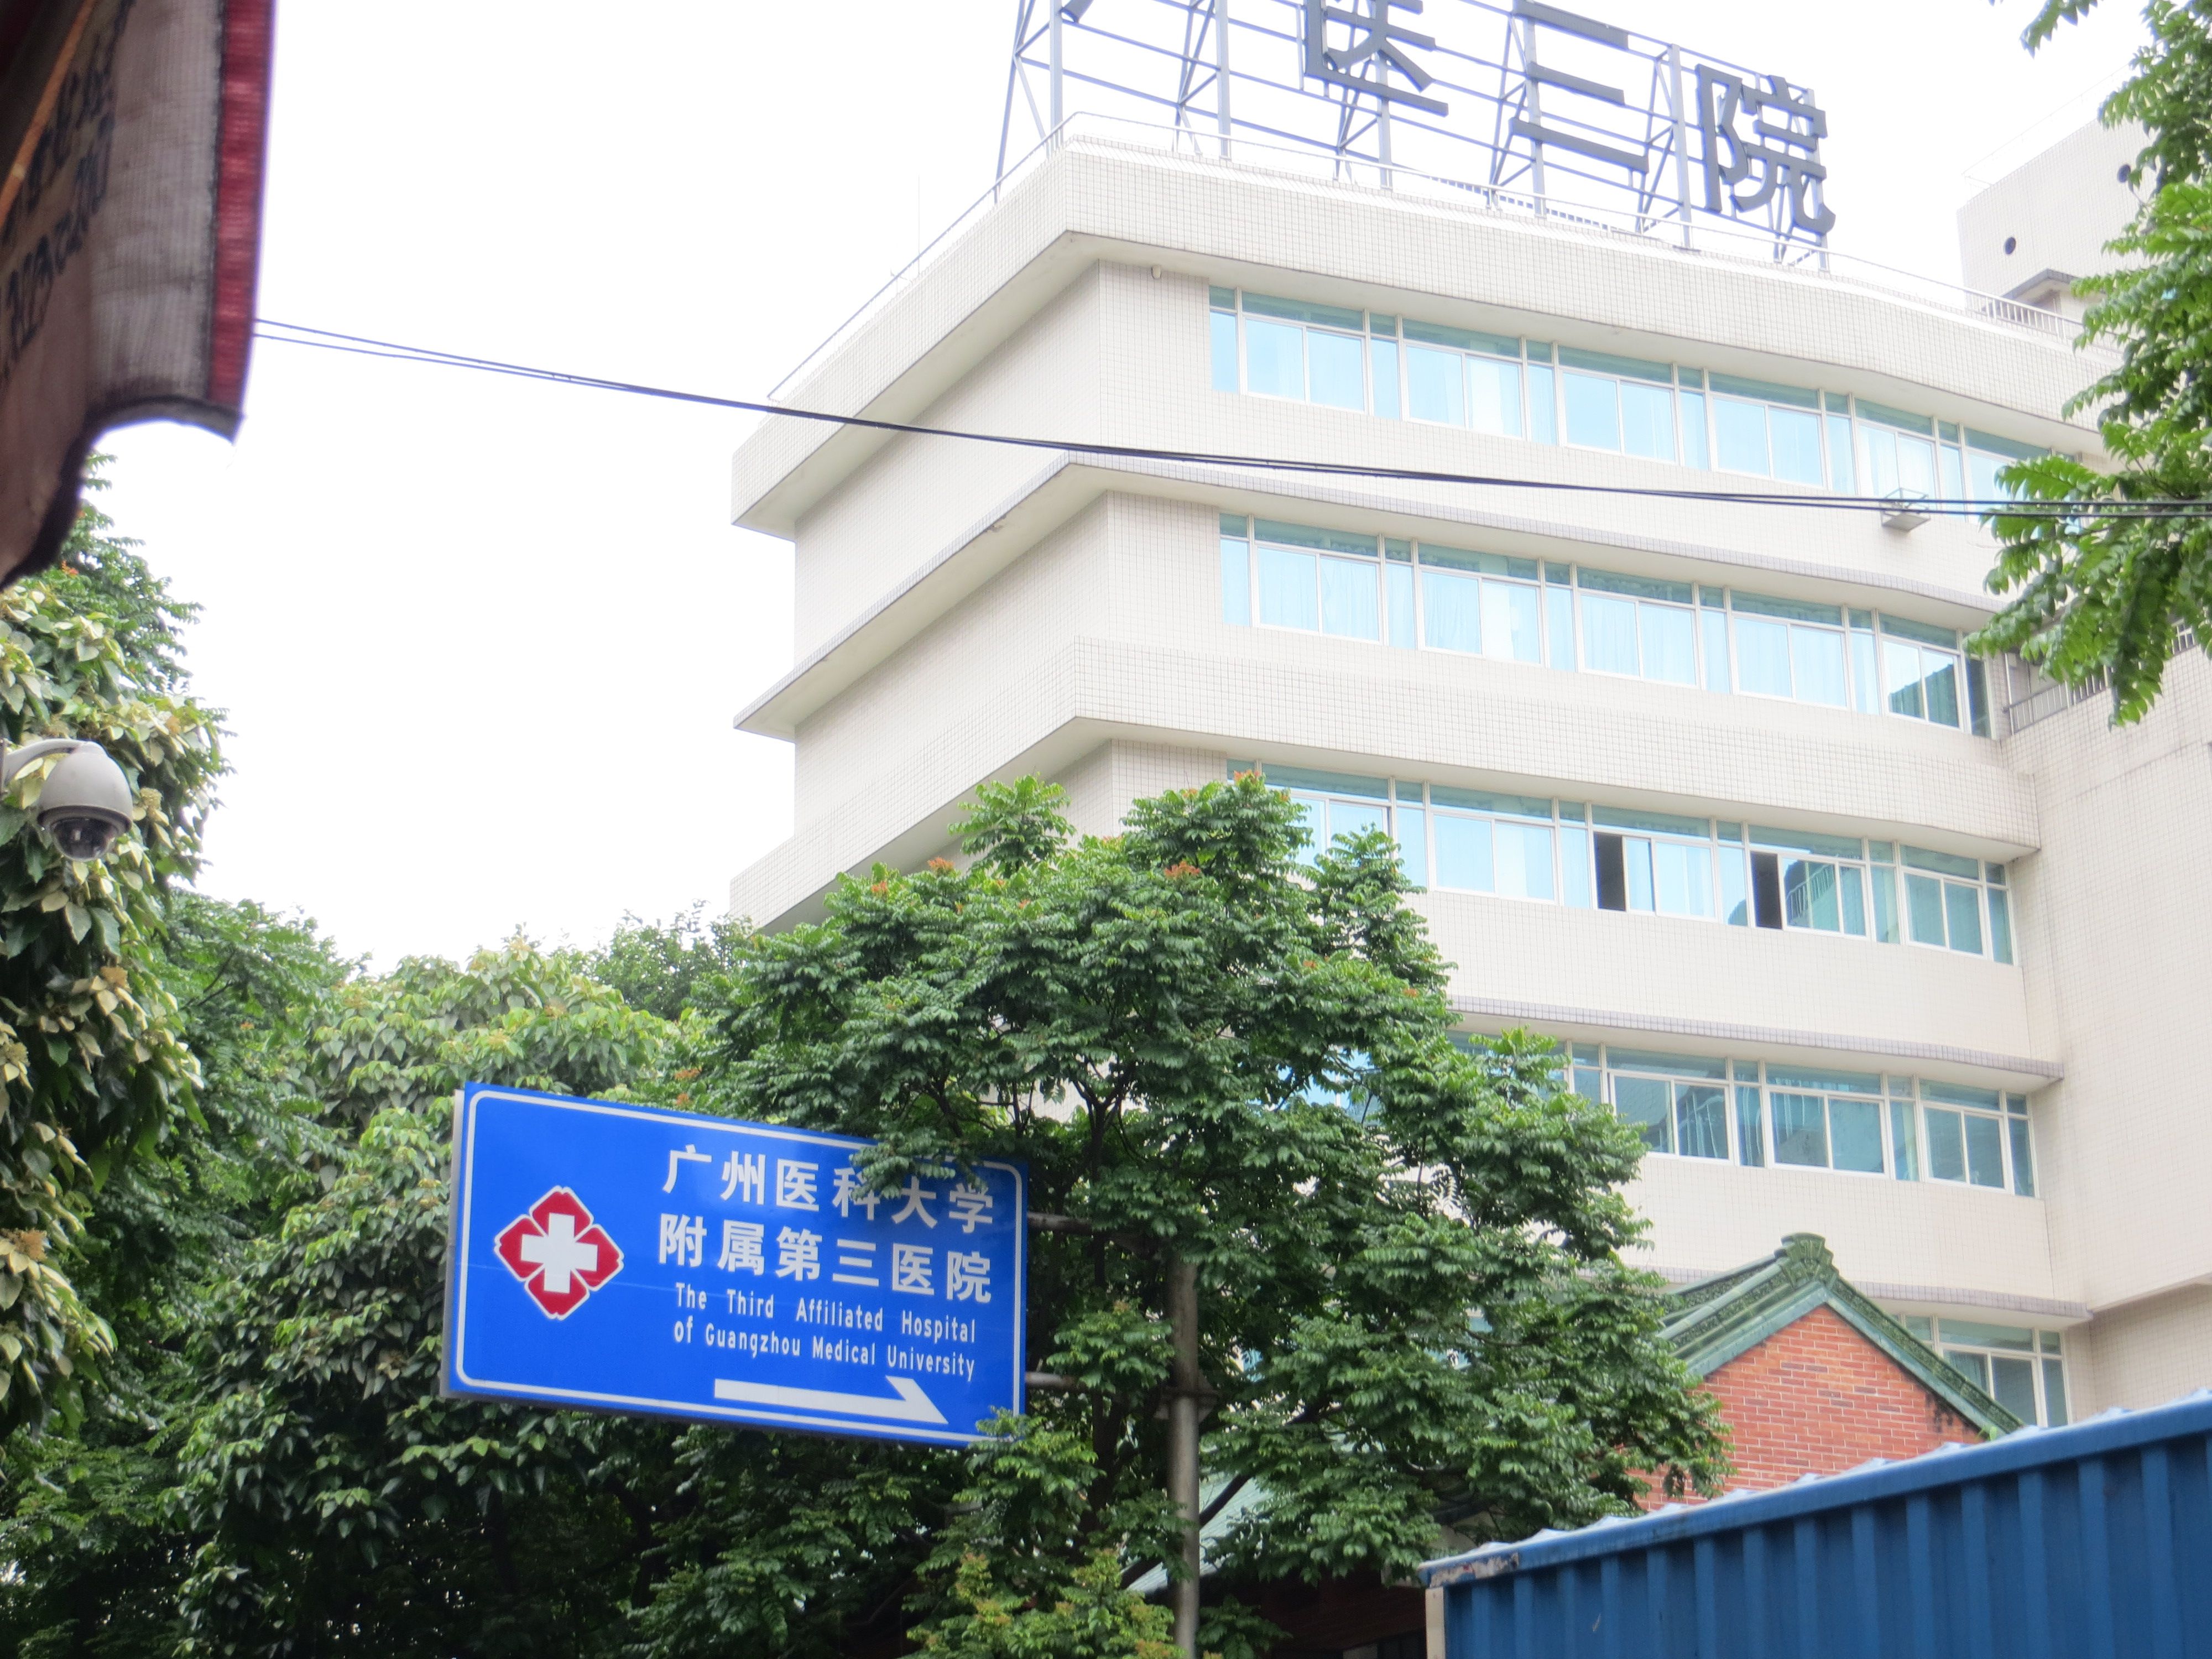 Guangzhou heritage hospital where MM was born 2016-06-27 041